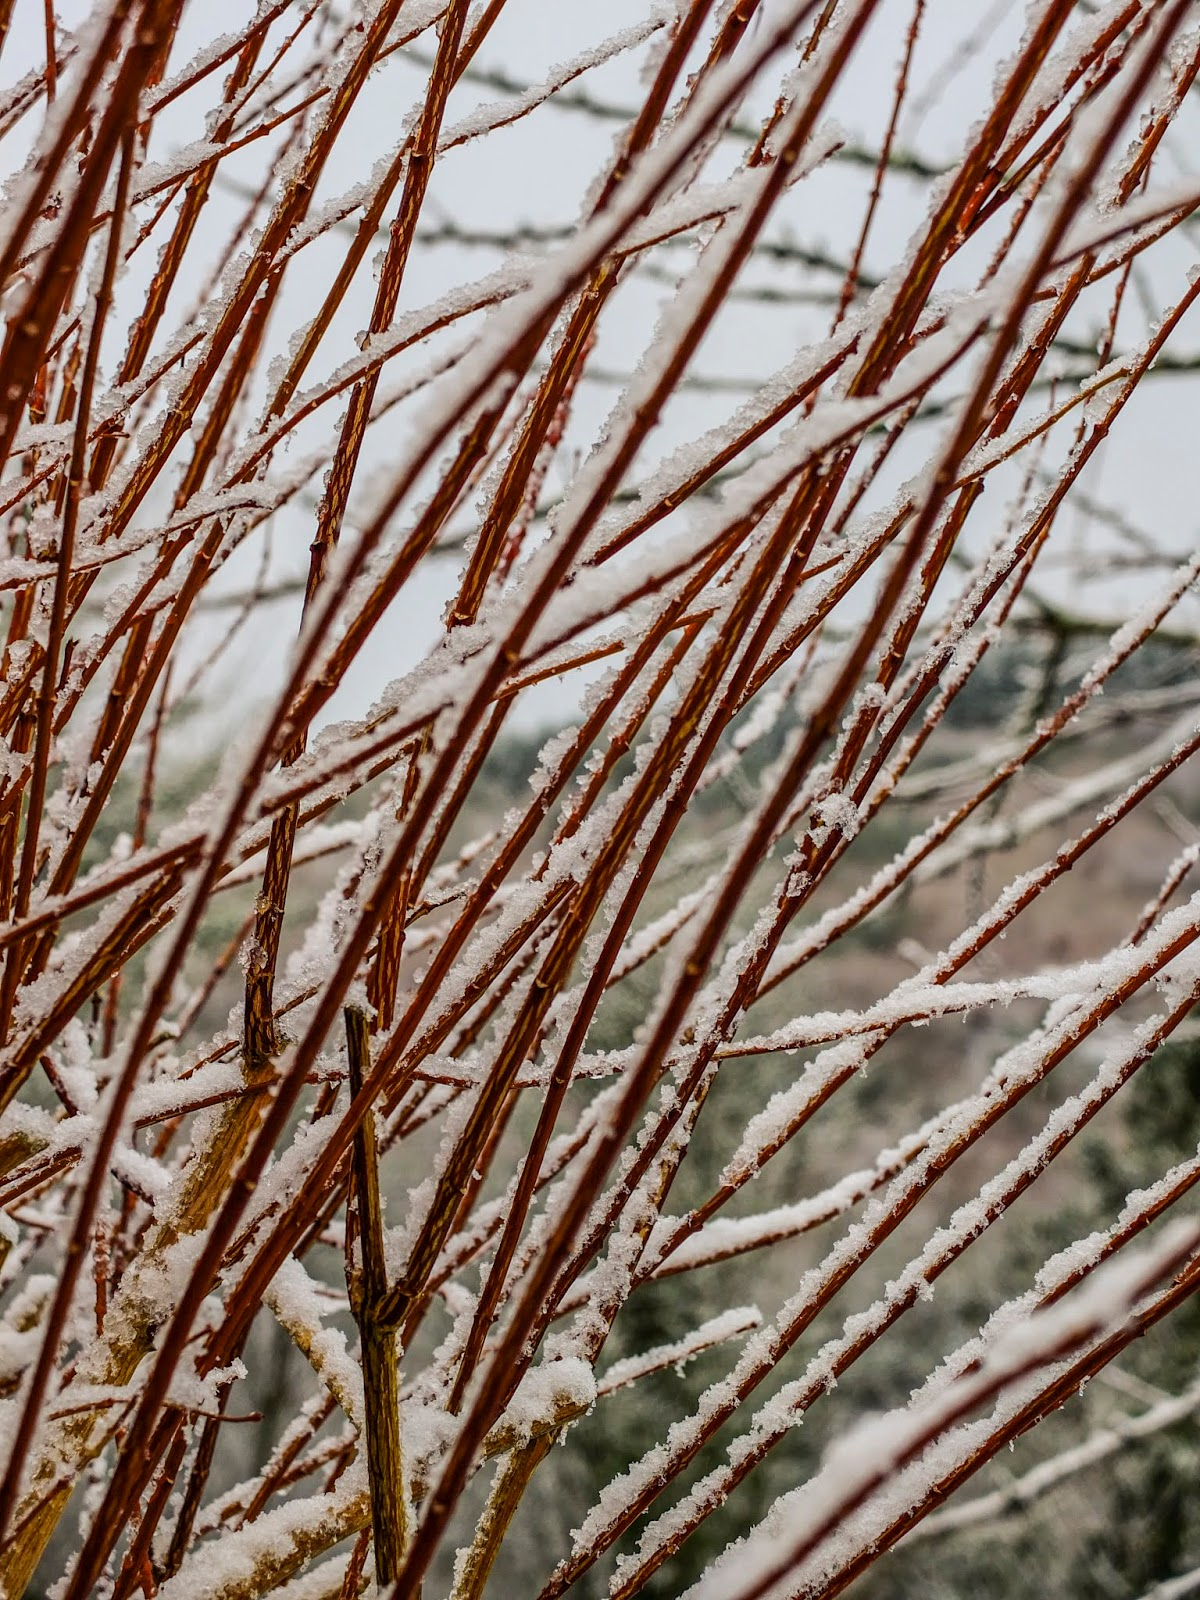 A close up of snow covered Jasmine bush branches.